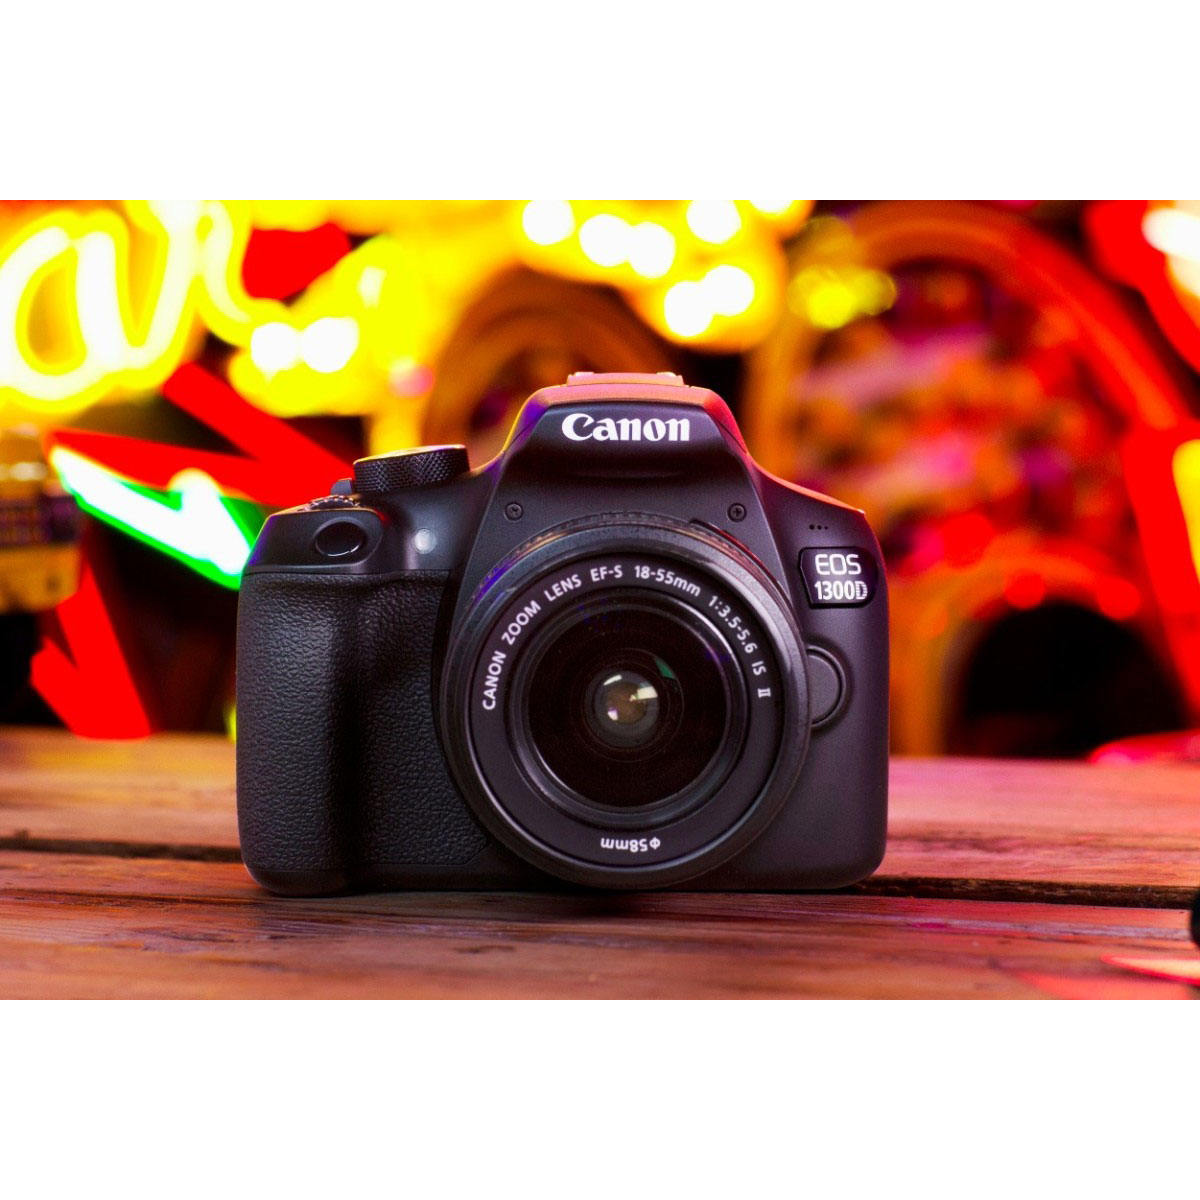 Canon EOS 1300D Digital Camera with 18-55mm IS II Lens